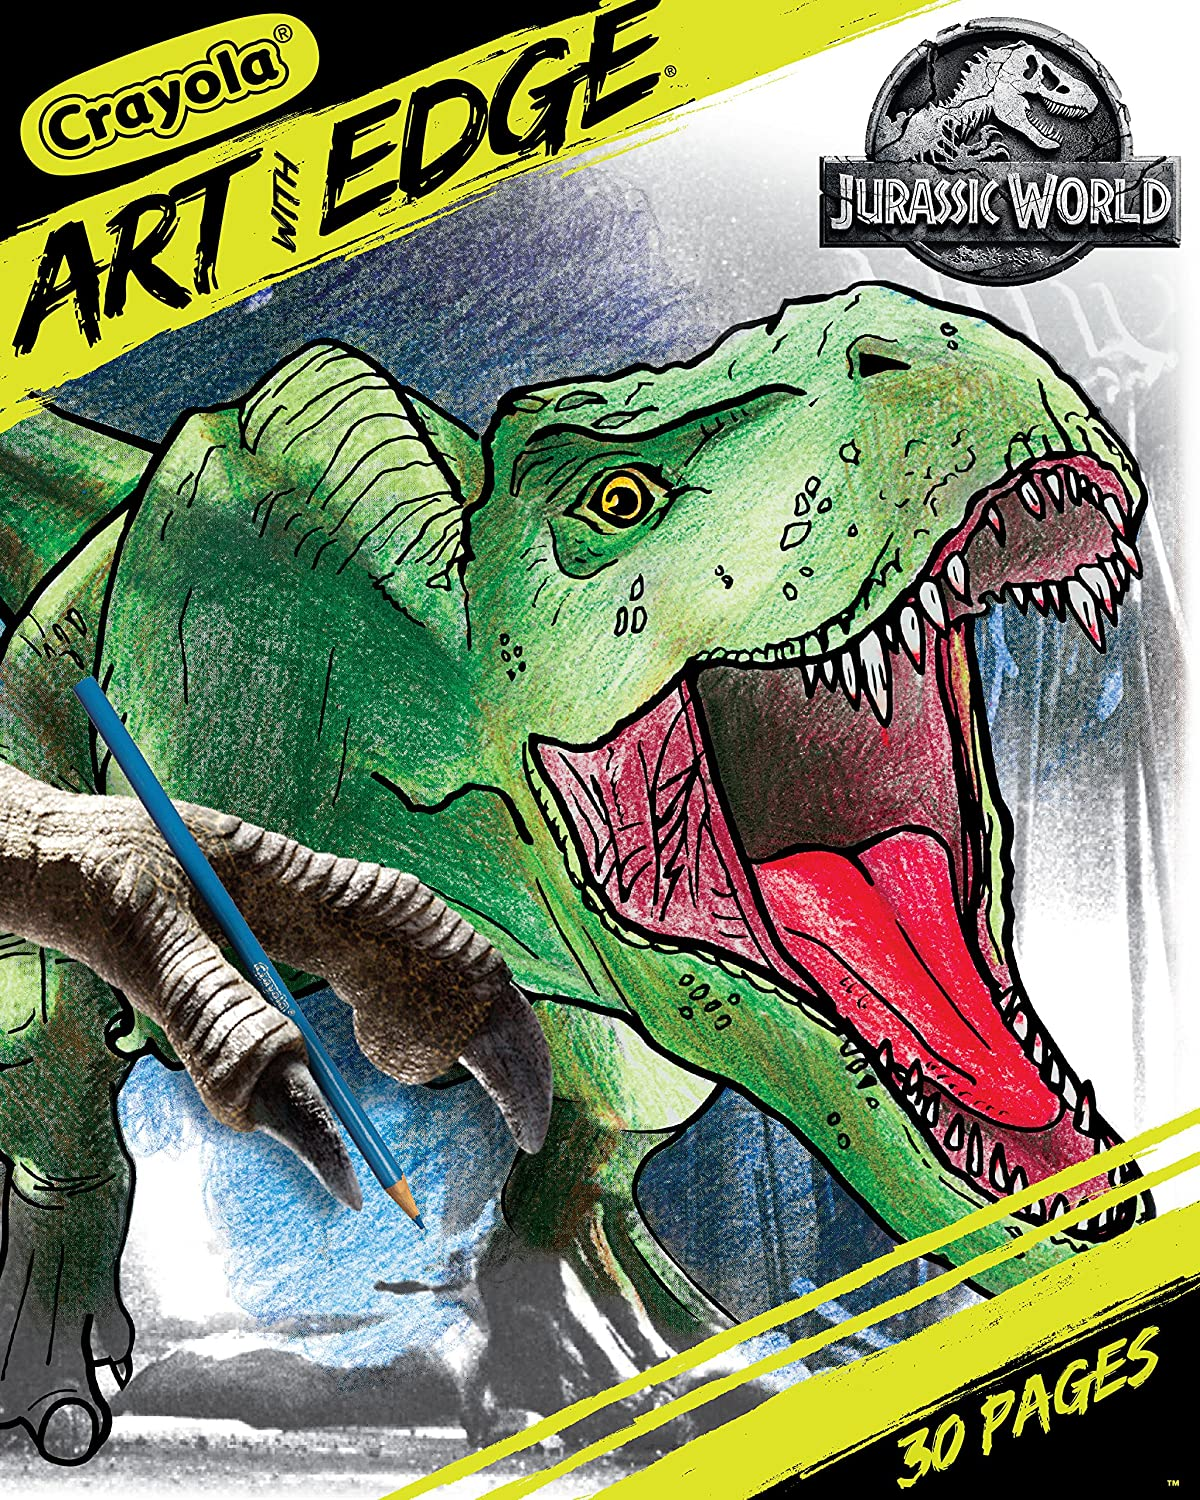 Crayola Art With Edge Jurassic World Coloring Book Gift For Teens 30 Coloring Pages